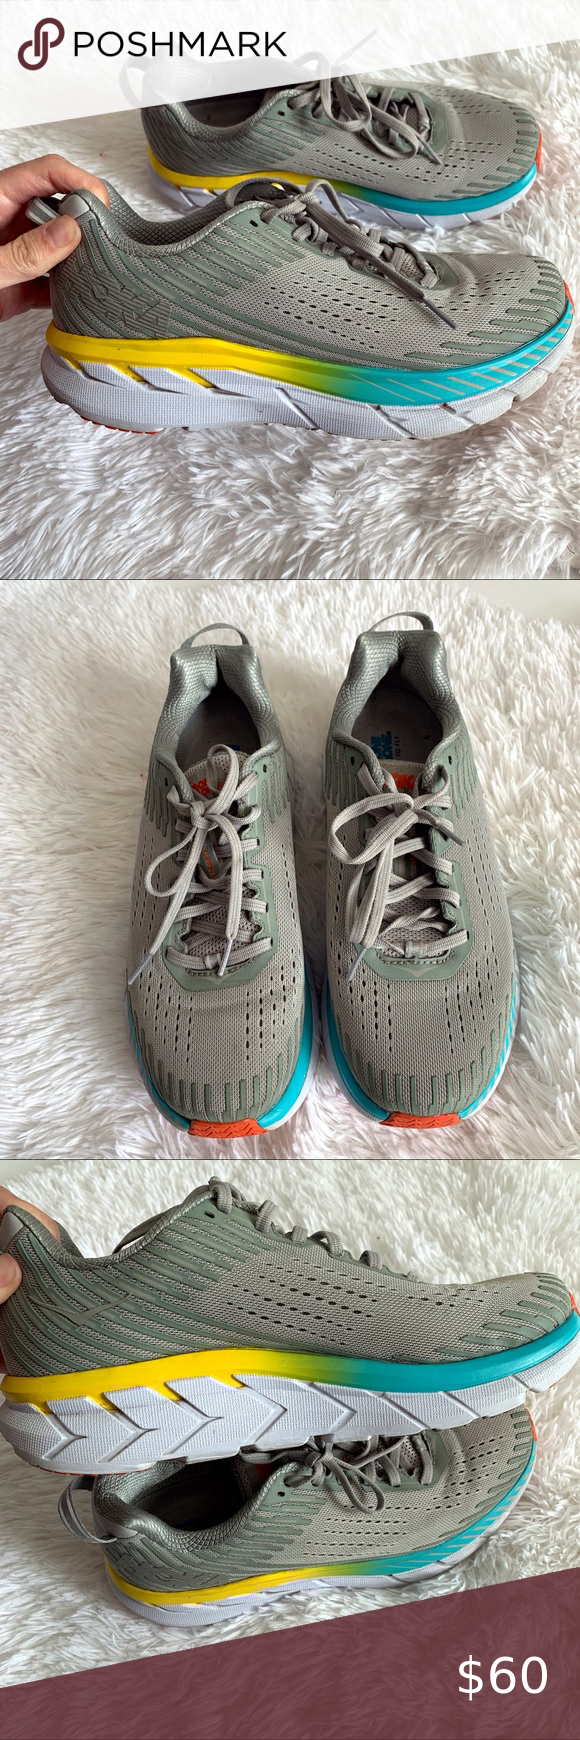 Wide running shoes